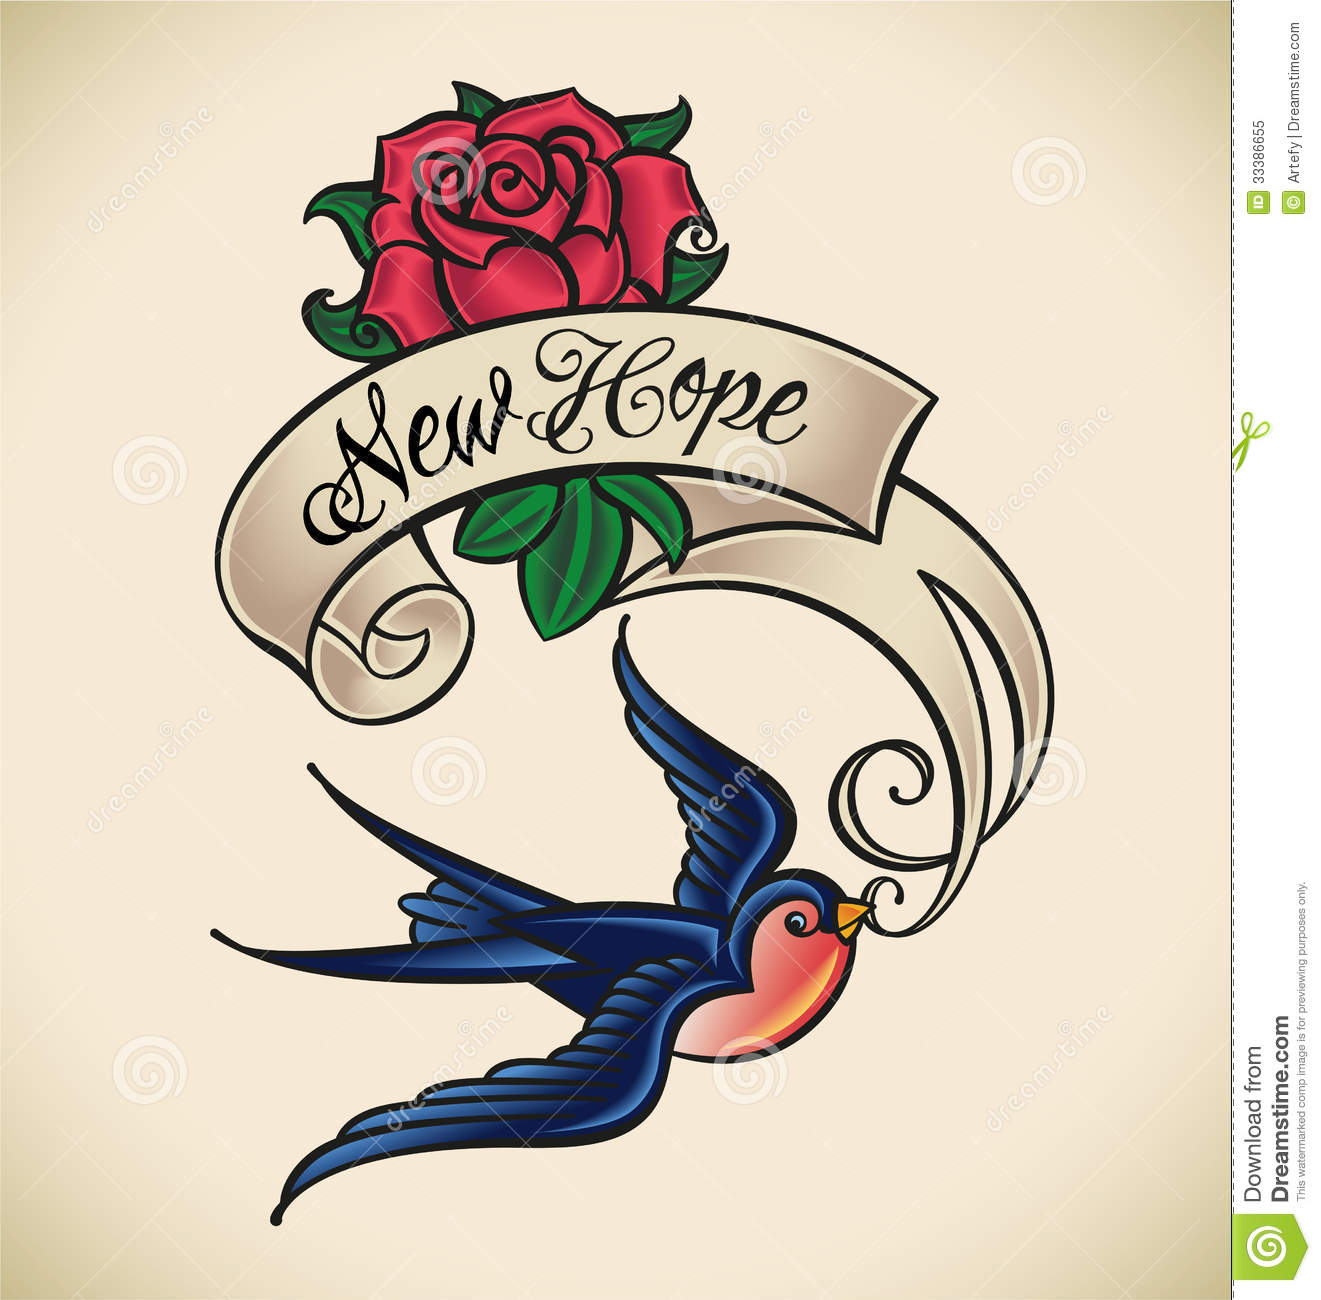 swallow brings new hope royalty free stock photo